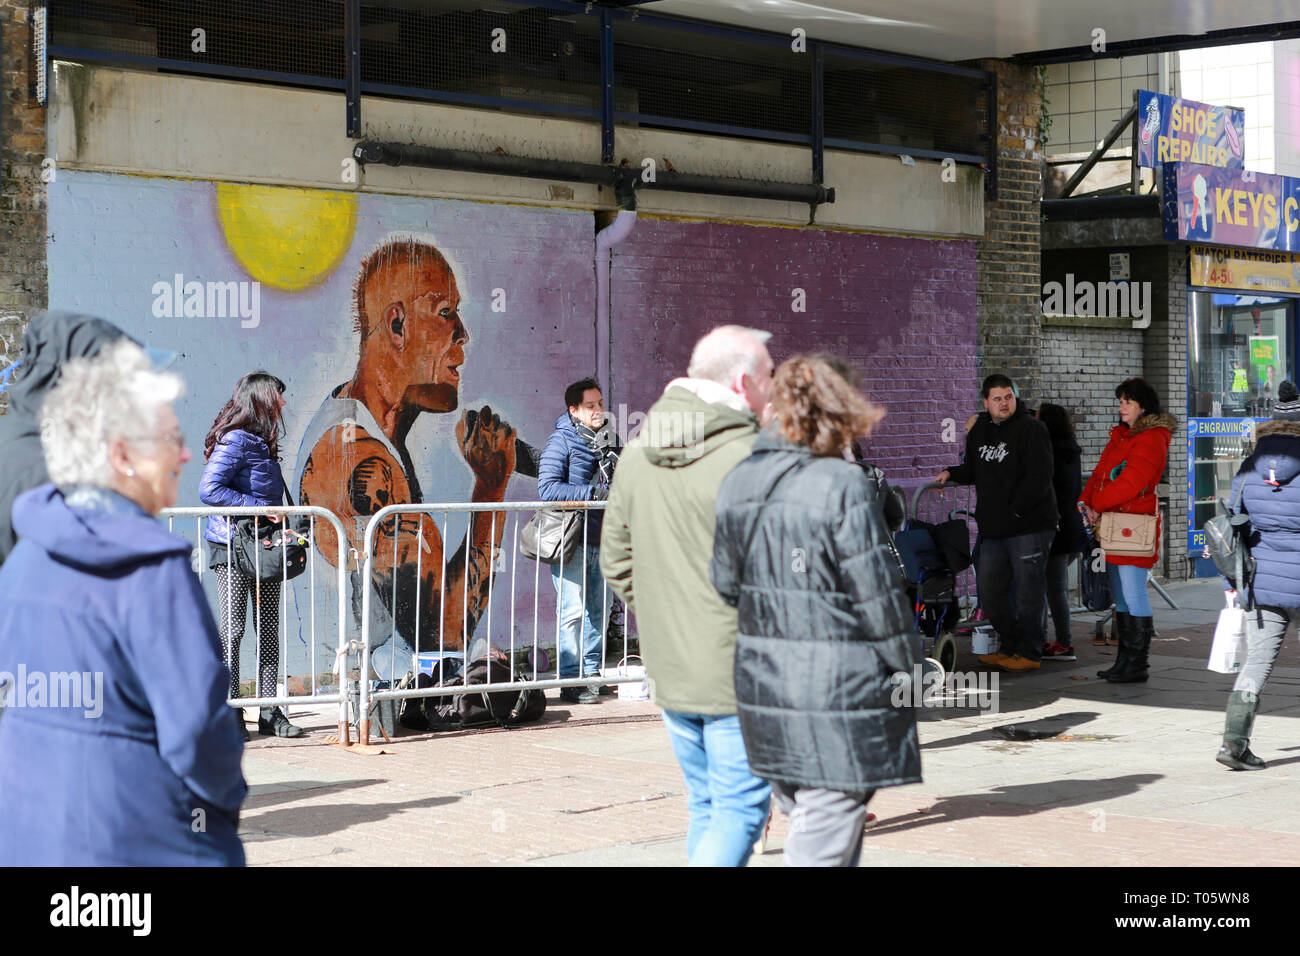 Southend on Sea, UK. 17th March, 2019. Sunday morning shoppers pass by as Local artist John Bulley works on his latest art work, a picture of the late Keith Flint from the band The Prodigy. Images taken with permission from the artist John Bulley. Penelope Barritt/Alamy Live News - Stock Image